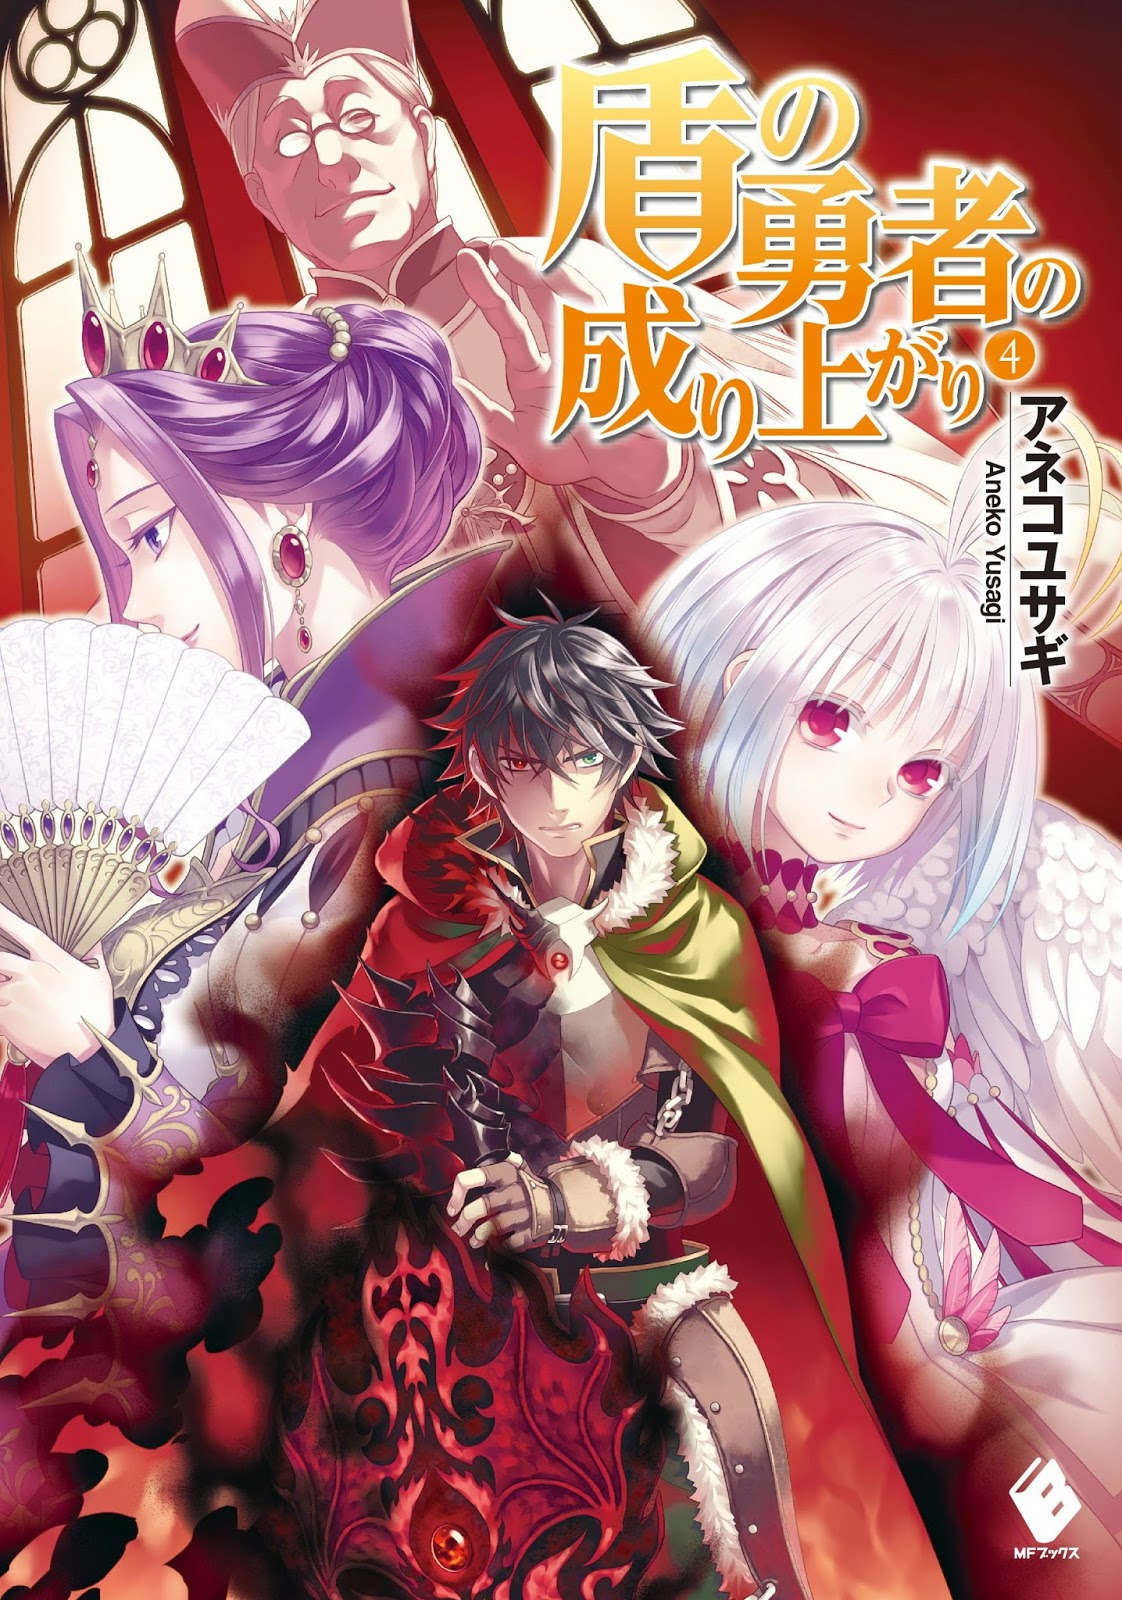 Sword And Game The Rising Of The Shield Hero Volume 4 Chapter 72